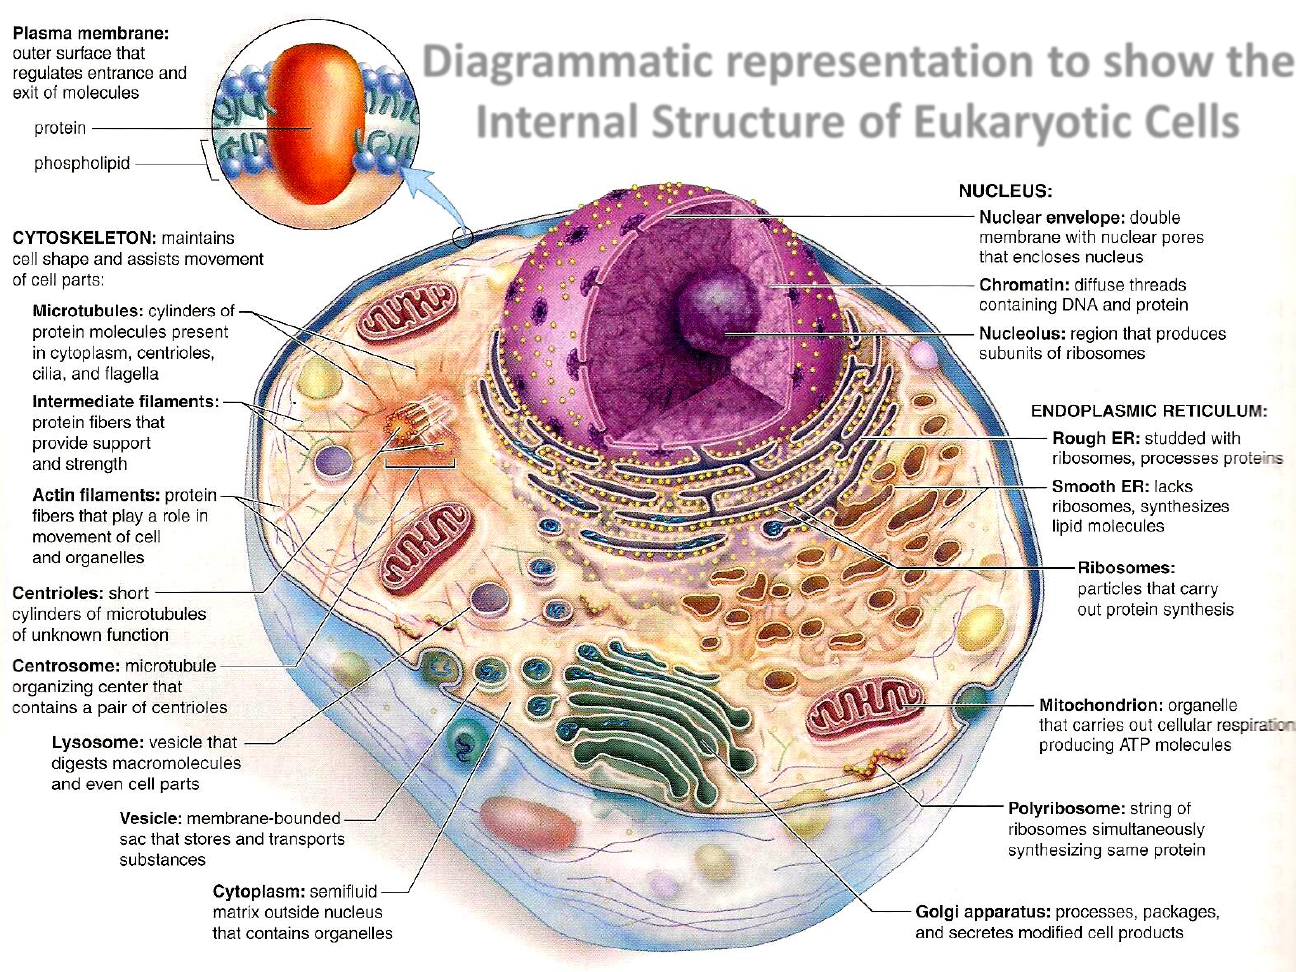 Eukaryotic cell structure | School | Pinterest | Cell structure ...